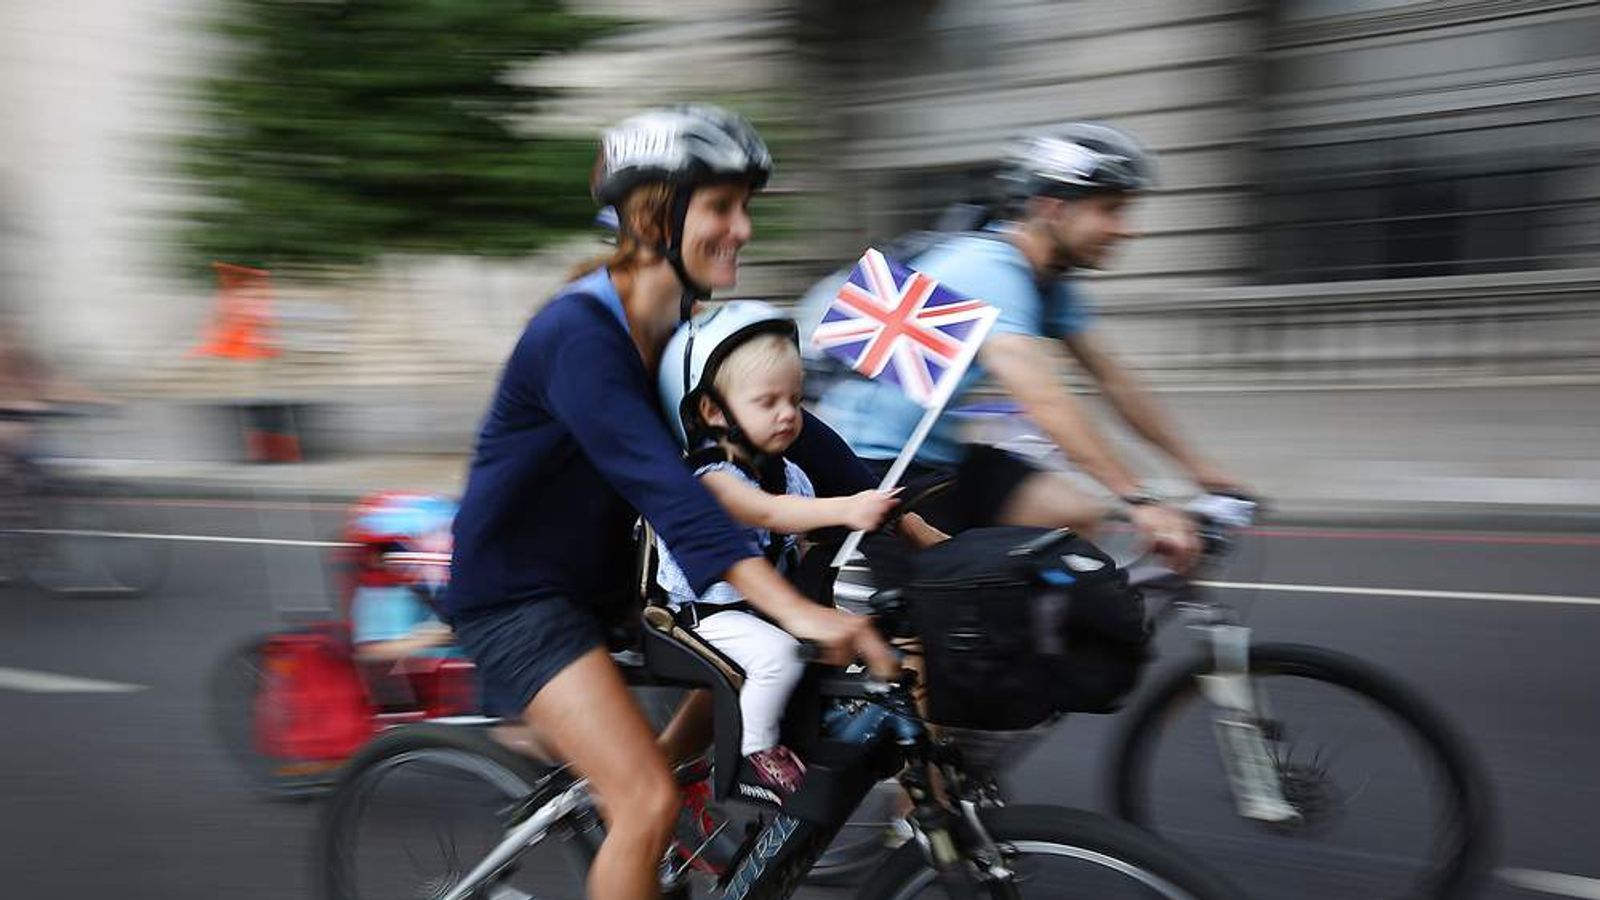 Cyclists take part in the RideLondon Freecycle event